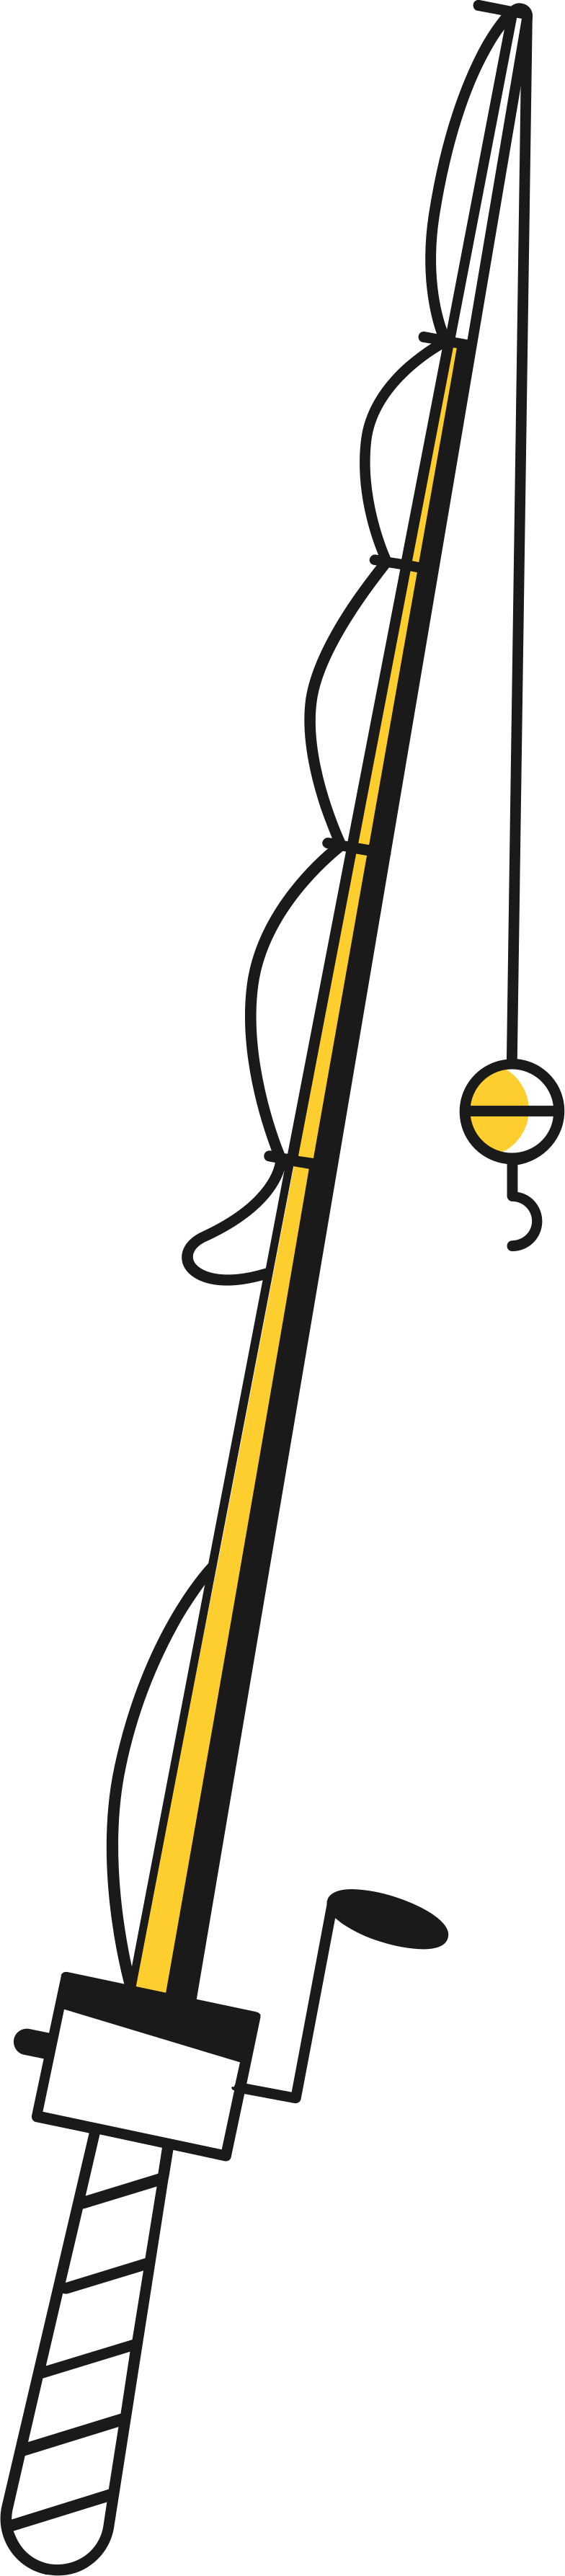 style fishing rod Vector images in PNG and SVG | Icons8 Illustrations